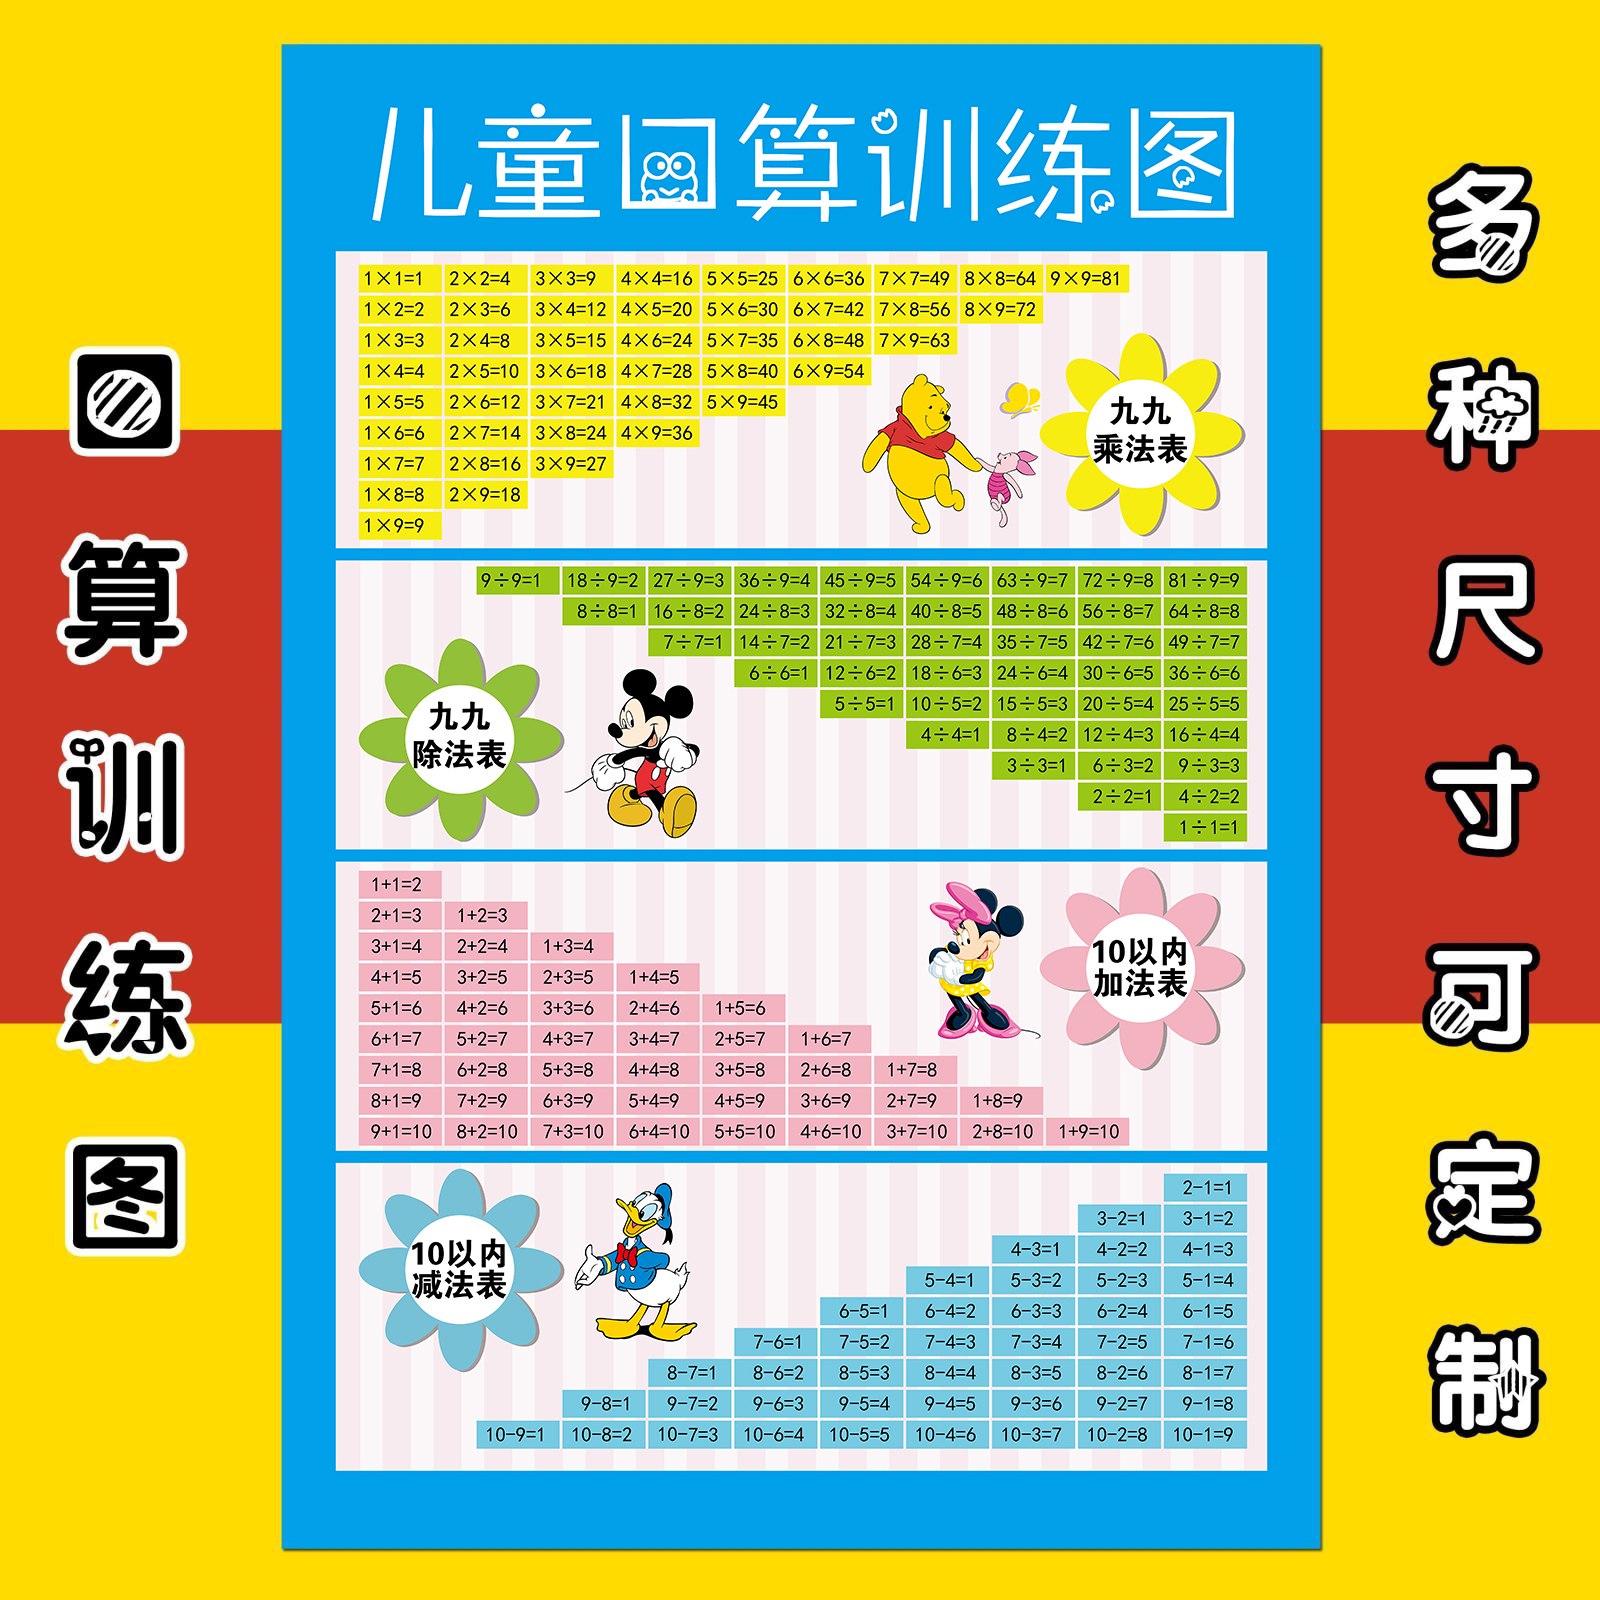 Usd schoolboy 99 multiplication table for children for Multiplication table of 99